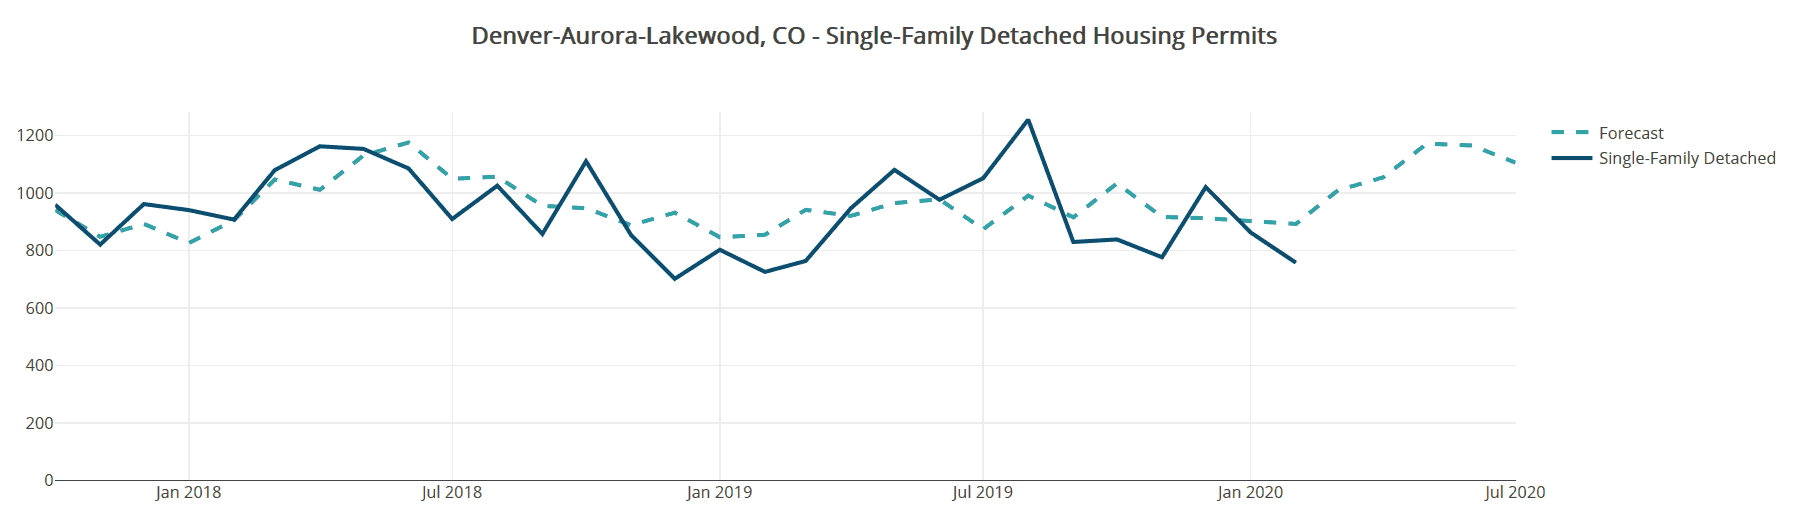 Business-as-usual forecast for single-family housing permits in Denver, CO